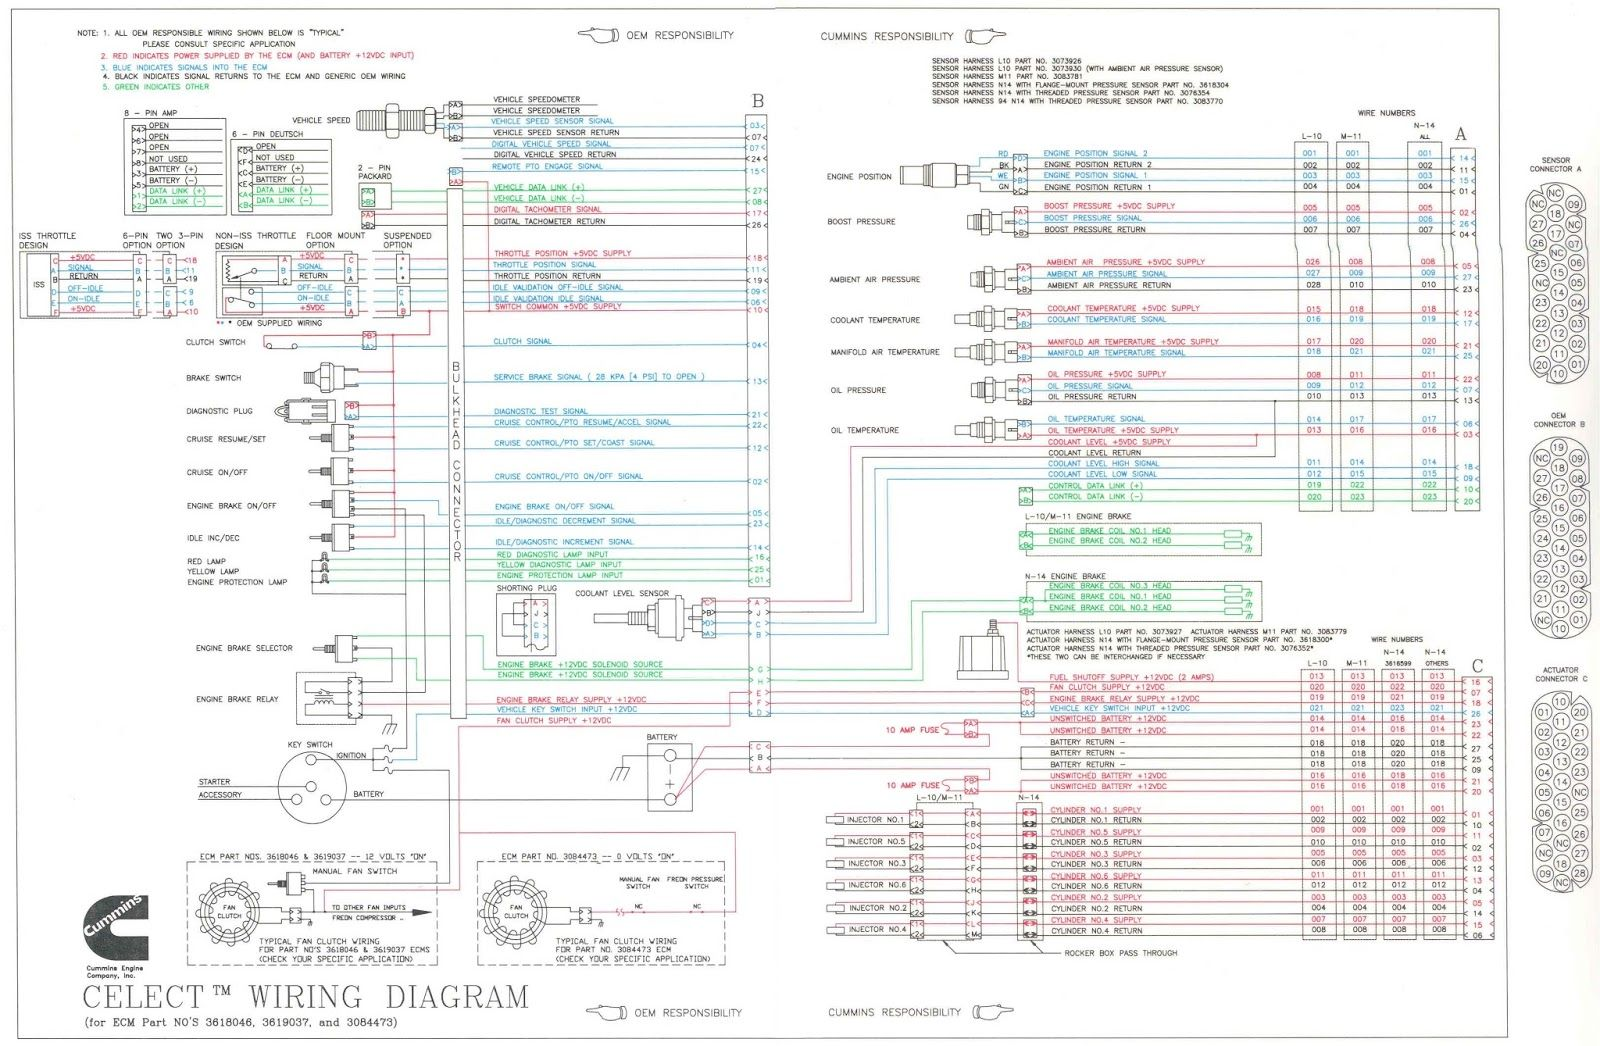 Stunning N14 Celect Ecm Wiring Diagram Photos Electrical And ... on